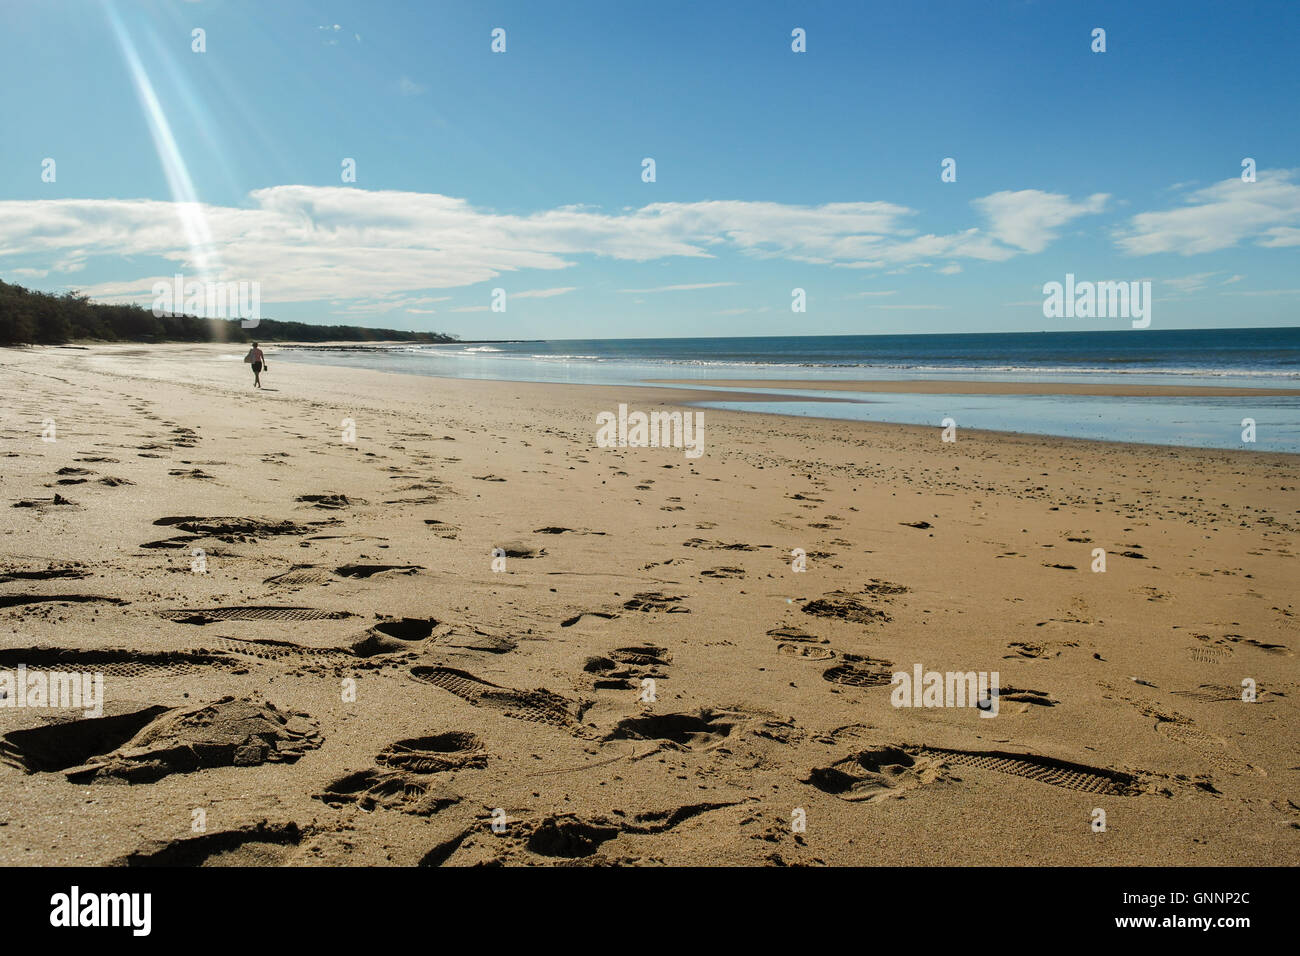 Woman walking at Mon Repos beach near Bundaberg, Queensland - Australia - Stock Image